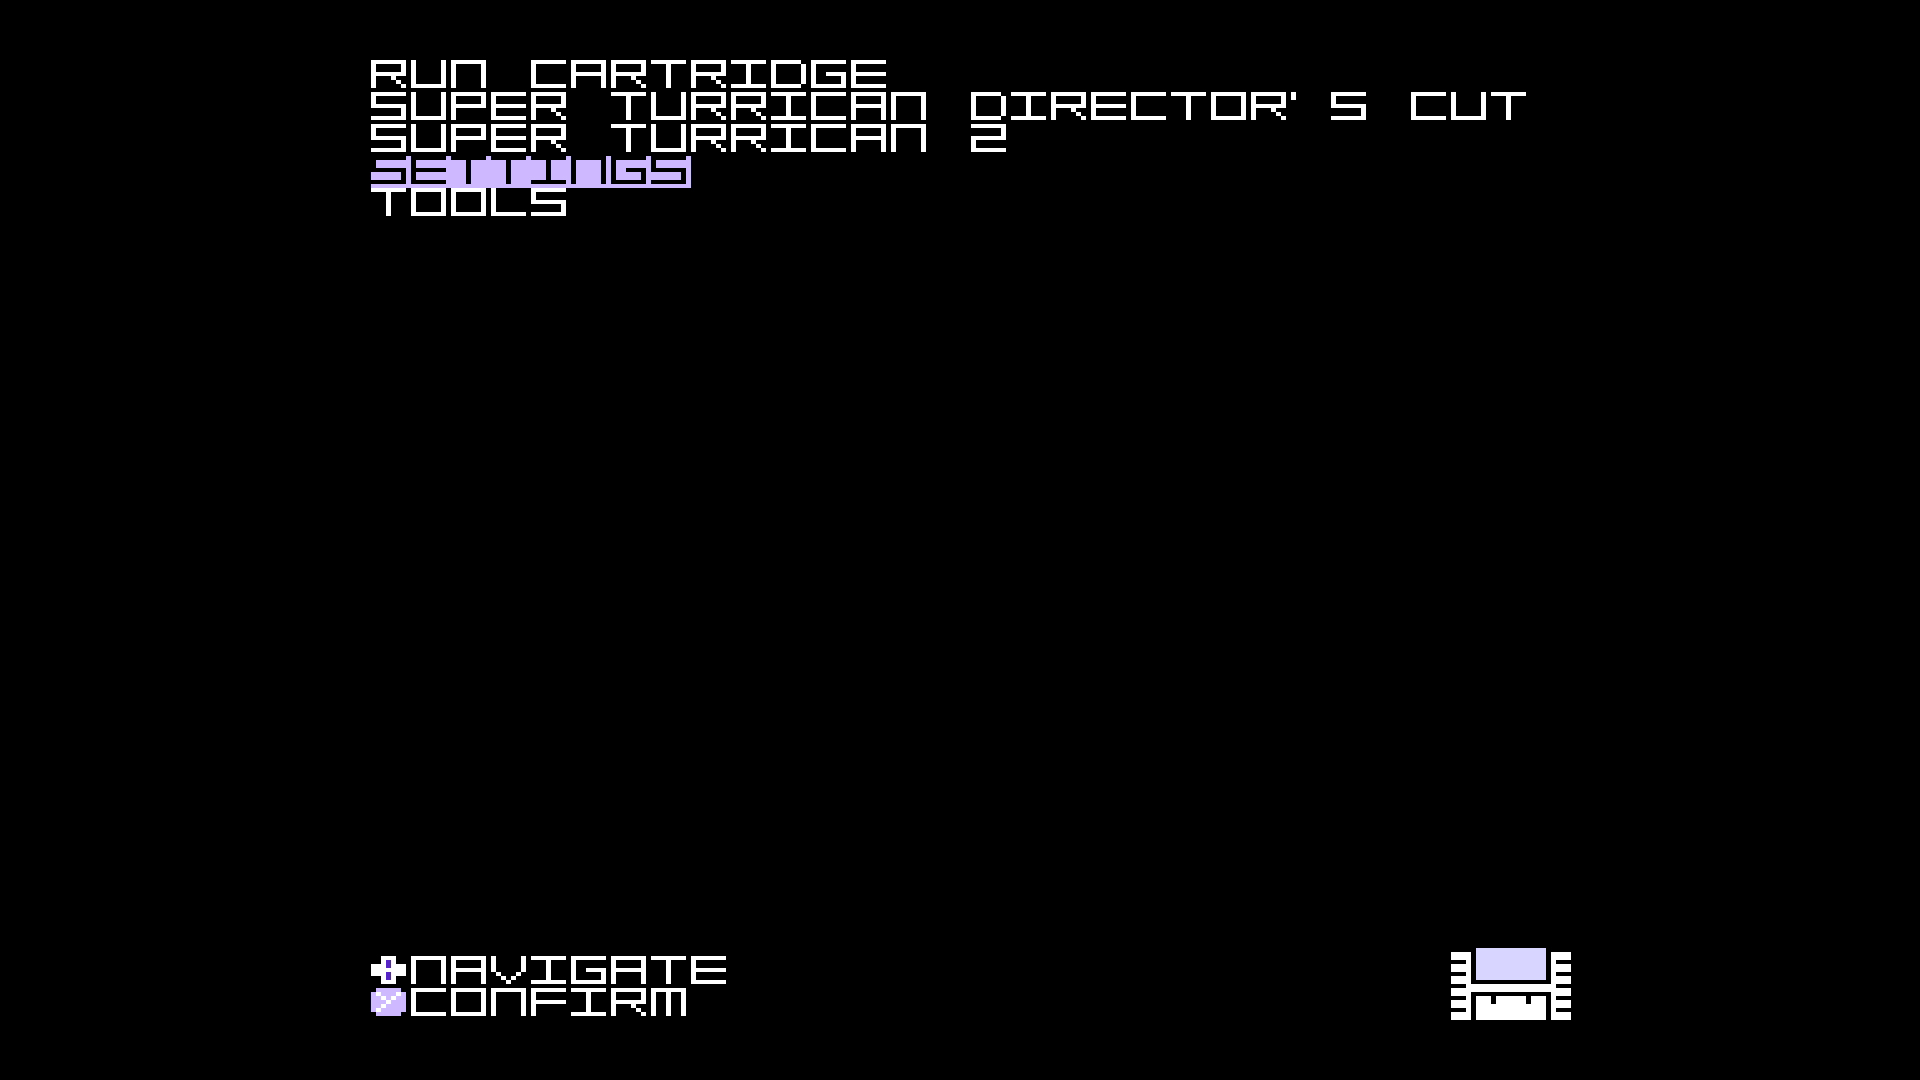 A screenshot of the Super Nt Main Menu with the Settings option highlighted.